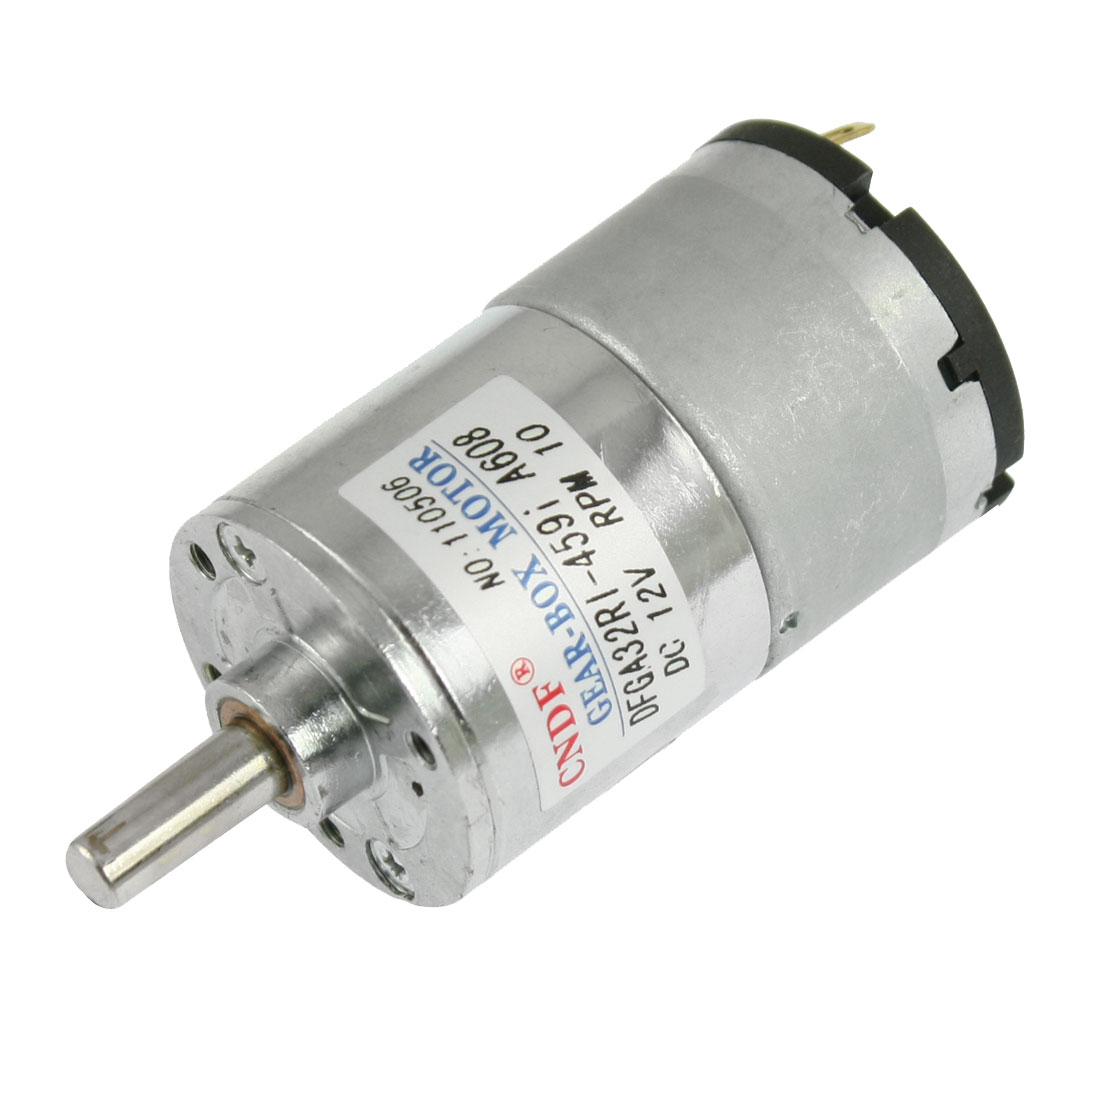 DC 12V 50mA 10RPM 8.26Kg-cm High Torque Permanent Magnetic DC Gear Motor